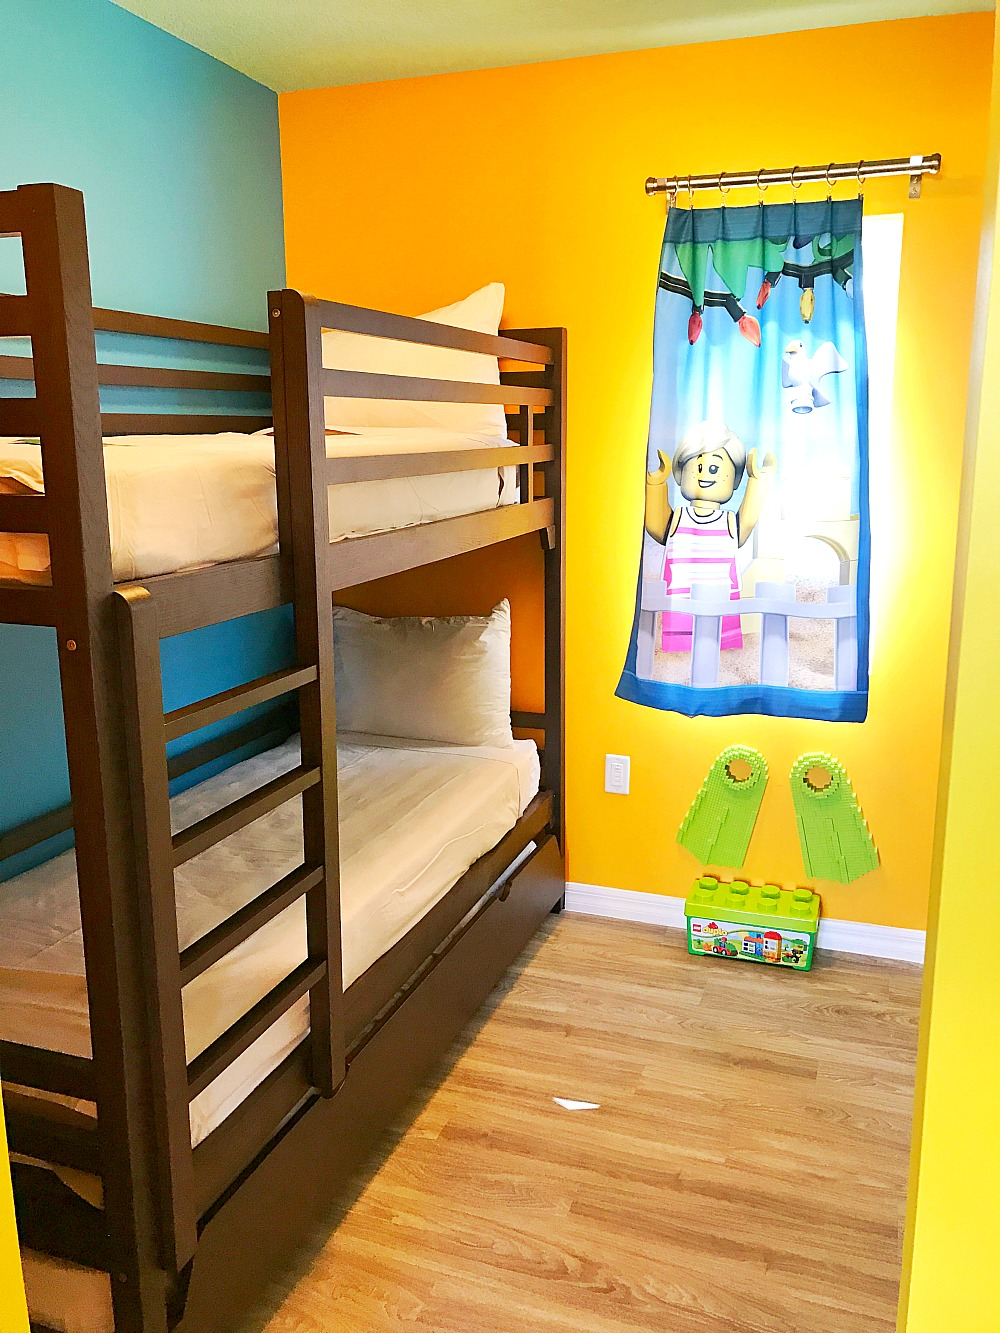 5 Reasons To Stay At LEGOLAND Florida Beach Retreat 4